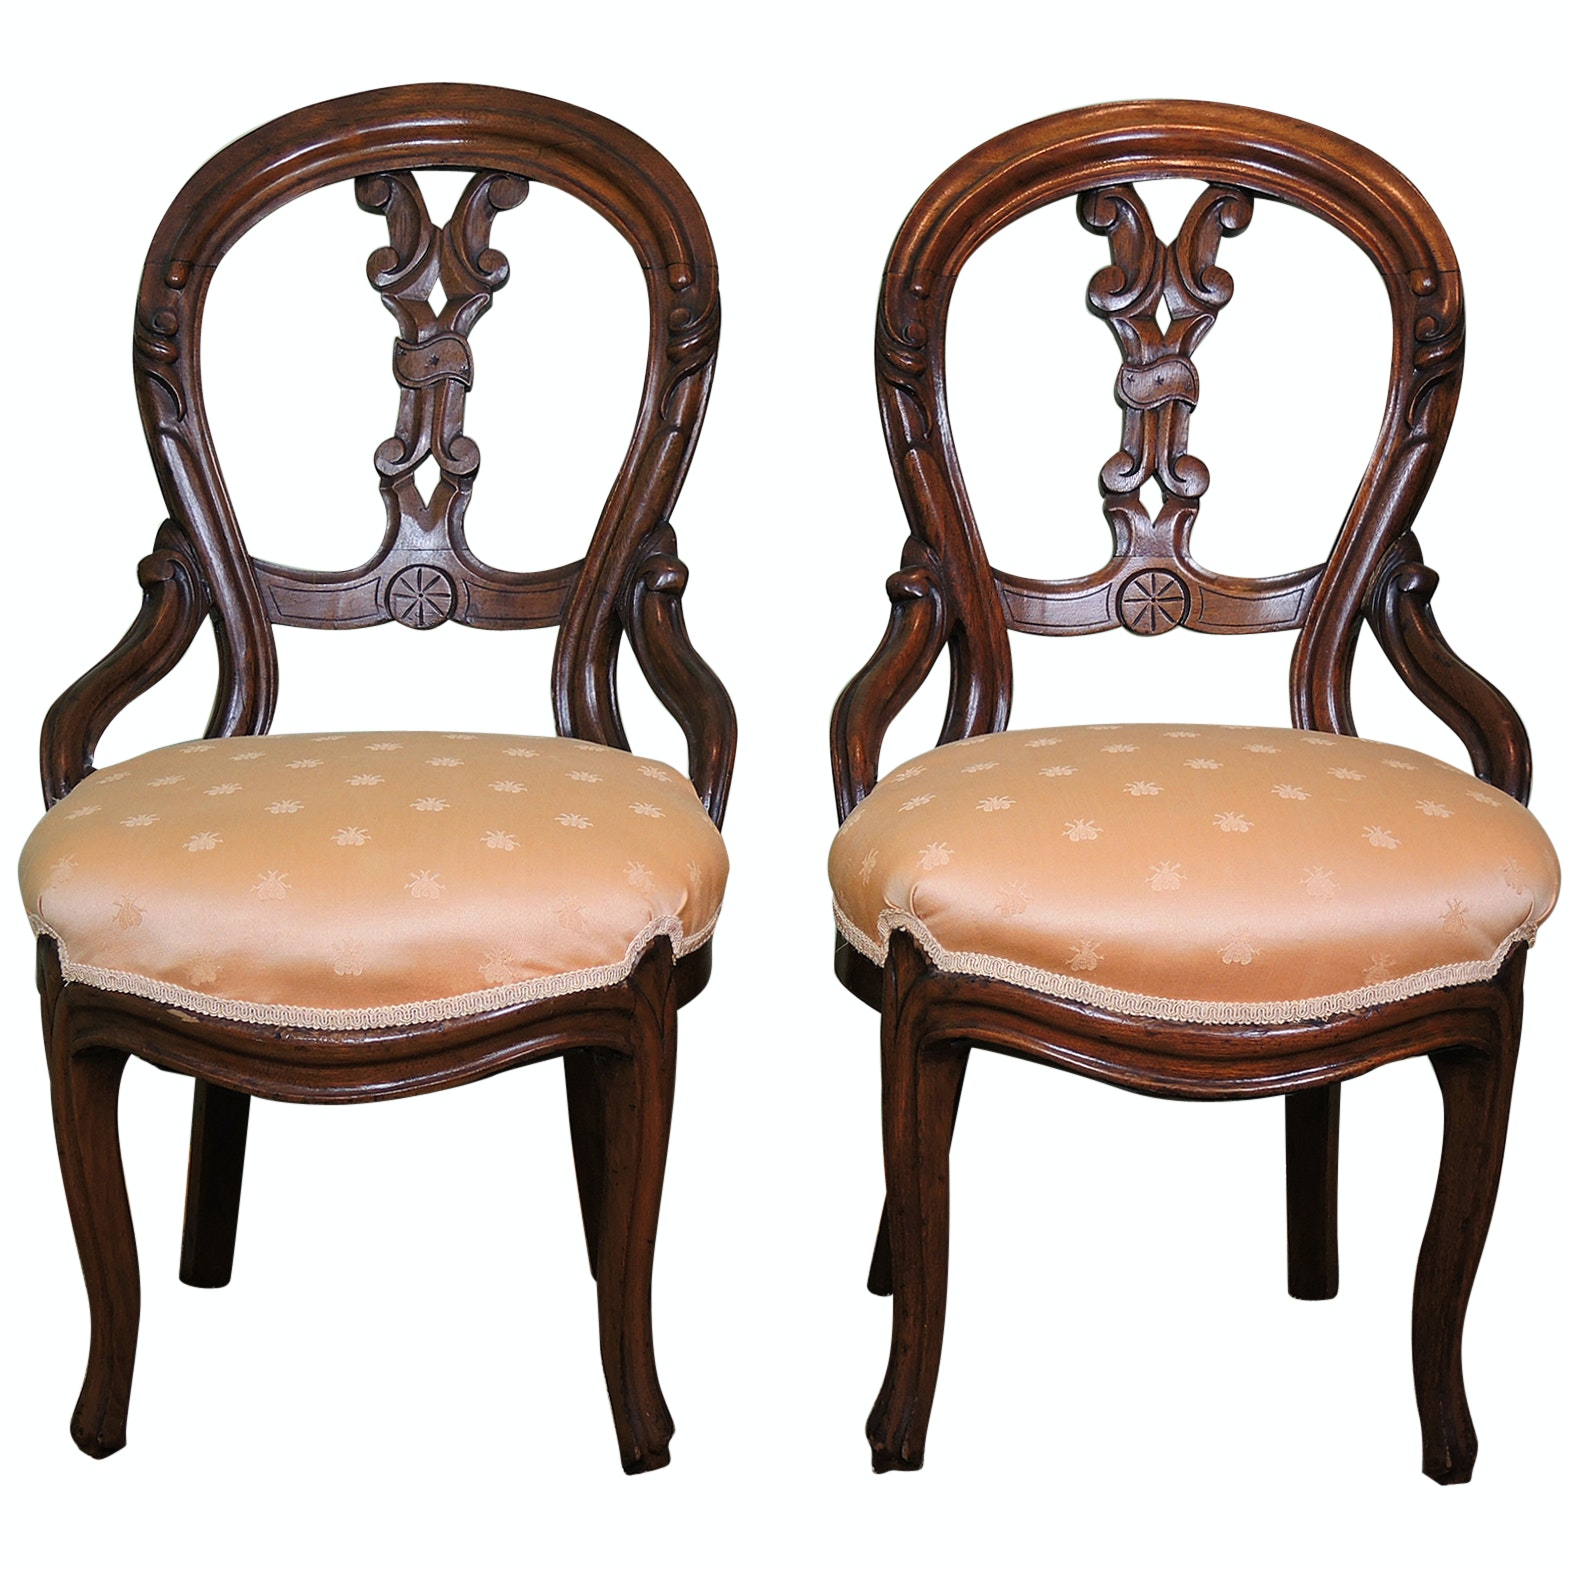 Carved Balloon Back Upholstered Chairs With Bee Pattern Fabric